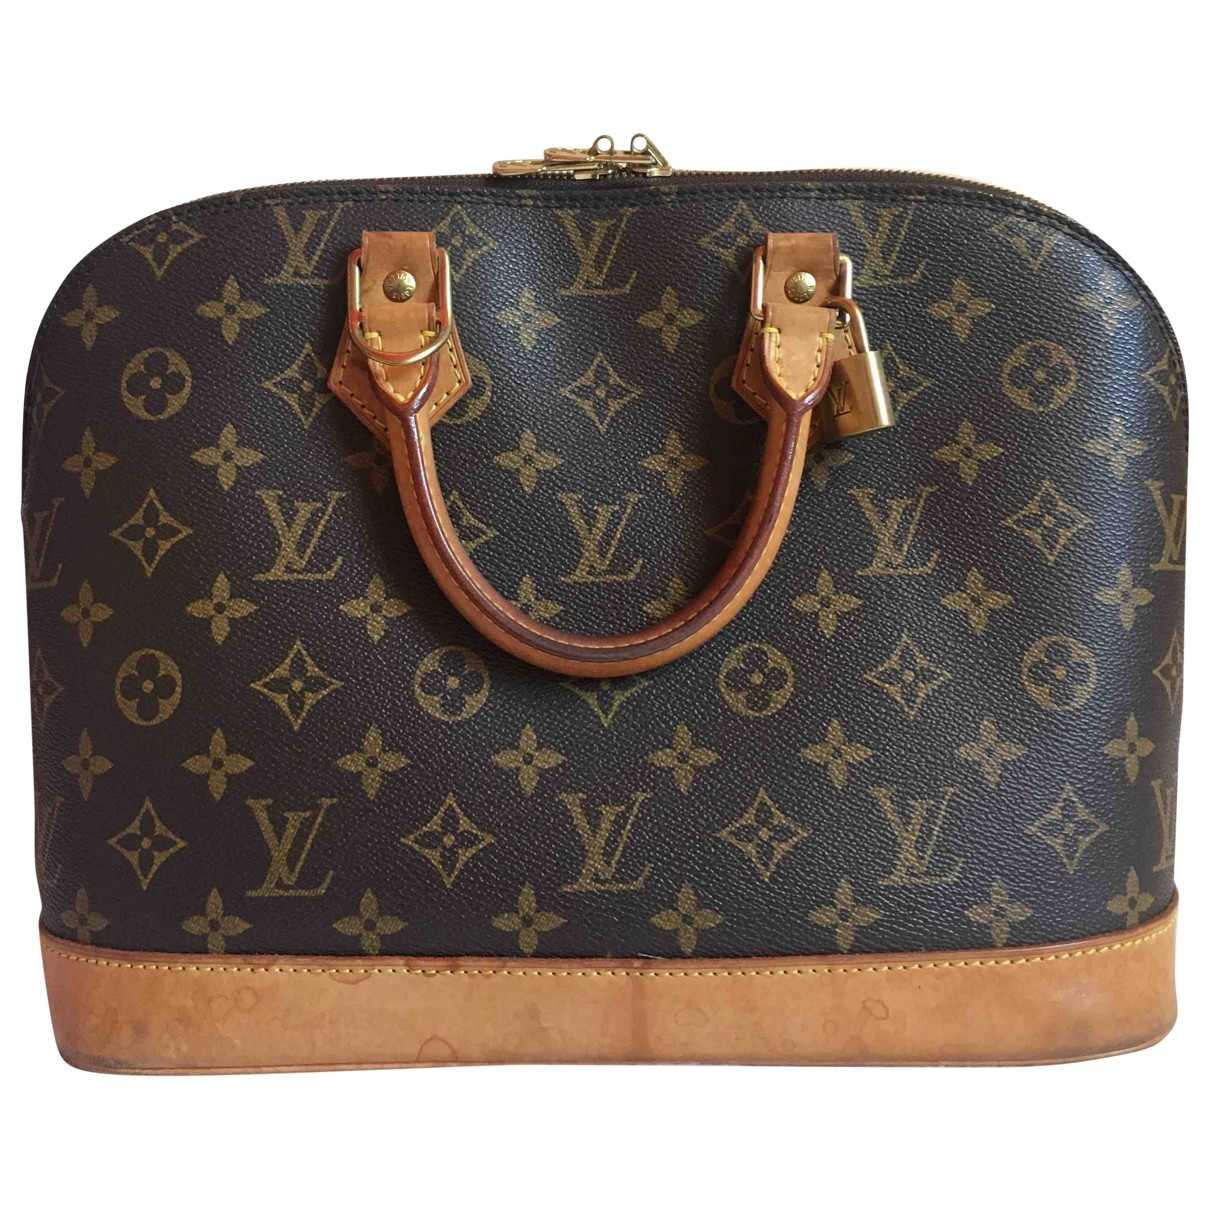 Louis Vuitton Alma Handtasche in  Braun Leinen